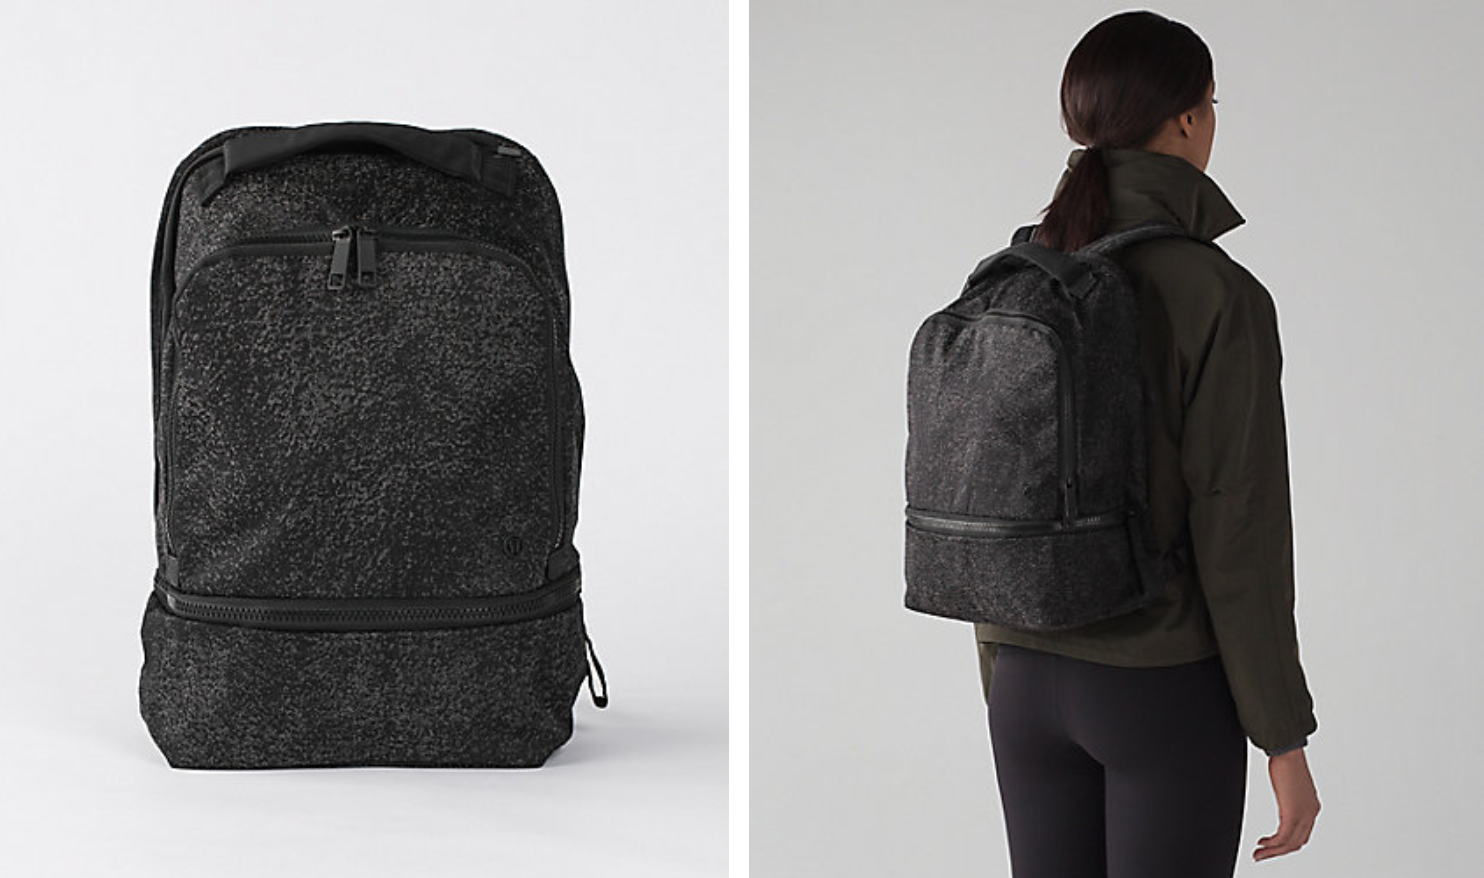 https://api.shopstyle.com/action/apiVisitRetailer?url=https%3A%2F%2Fshop.lululemon.com%2Fp%2Fbags%2FGo-Lightly-Backpack-Reflective%2F_%2Fprod8430915%3Frcnt%3D80%26N%3D1z13ziiZ7vf%26cnt%3D85%26color%3DLW9AHZS_028918&site=www.shopstyle.ca&pid=uid6784-25288972-7